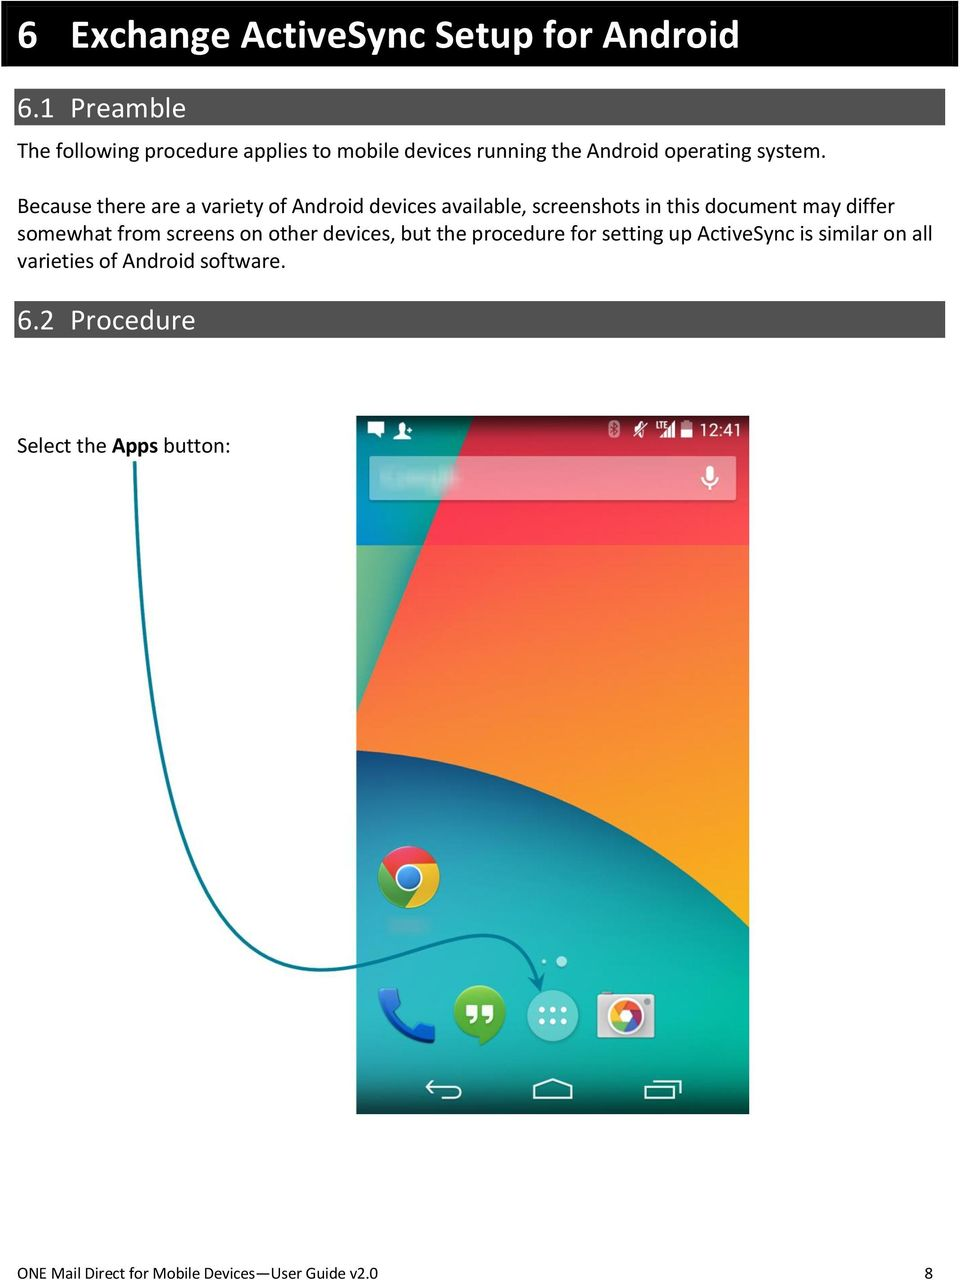 Because there are a variety of Android devices available, screenshots in this document may differ somewhat from